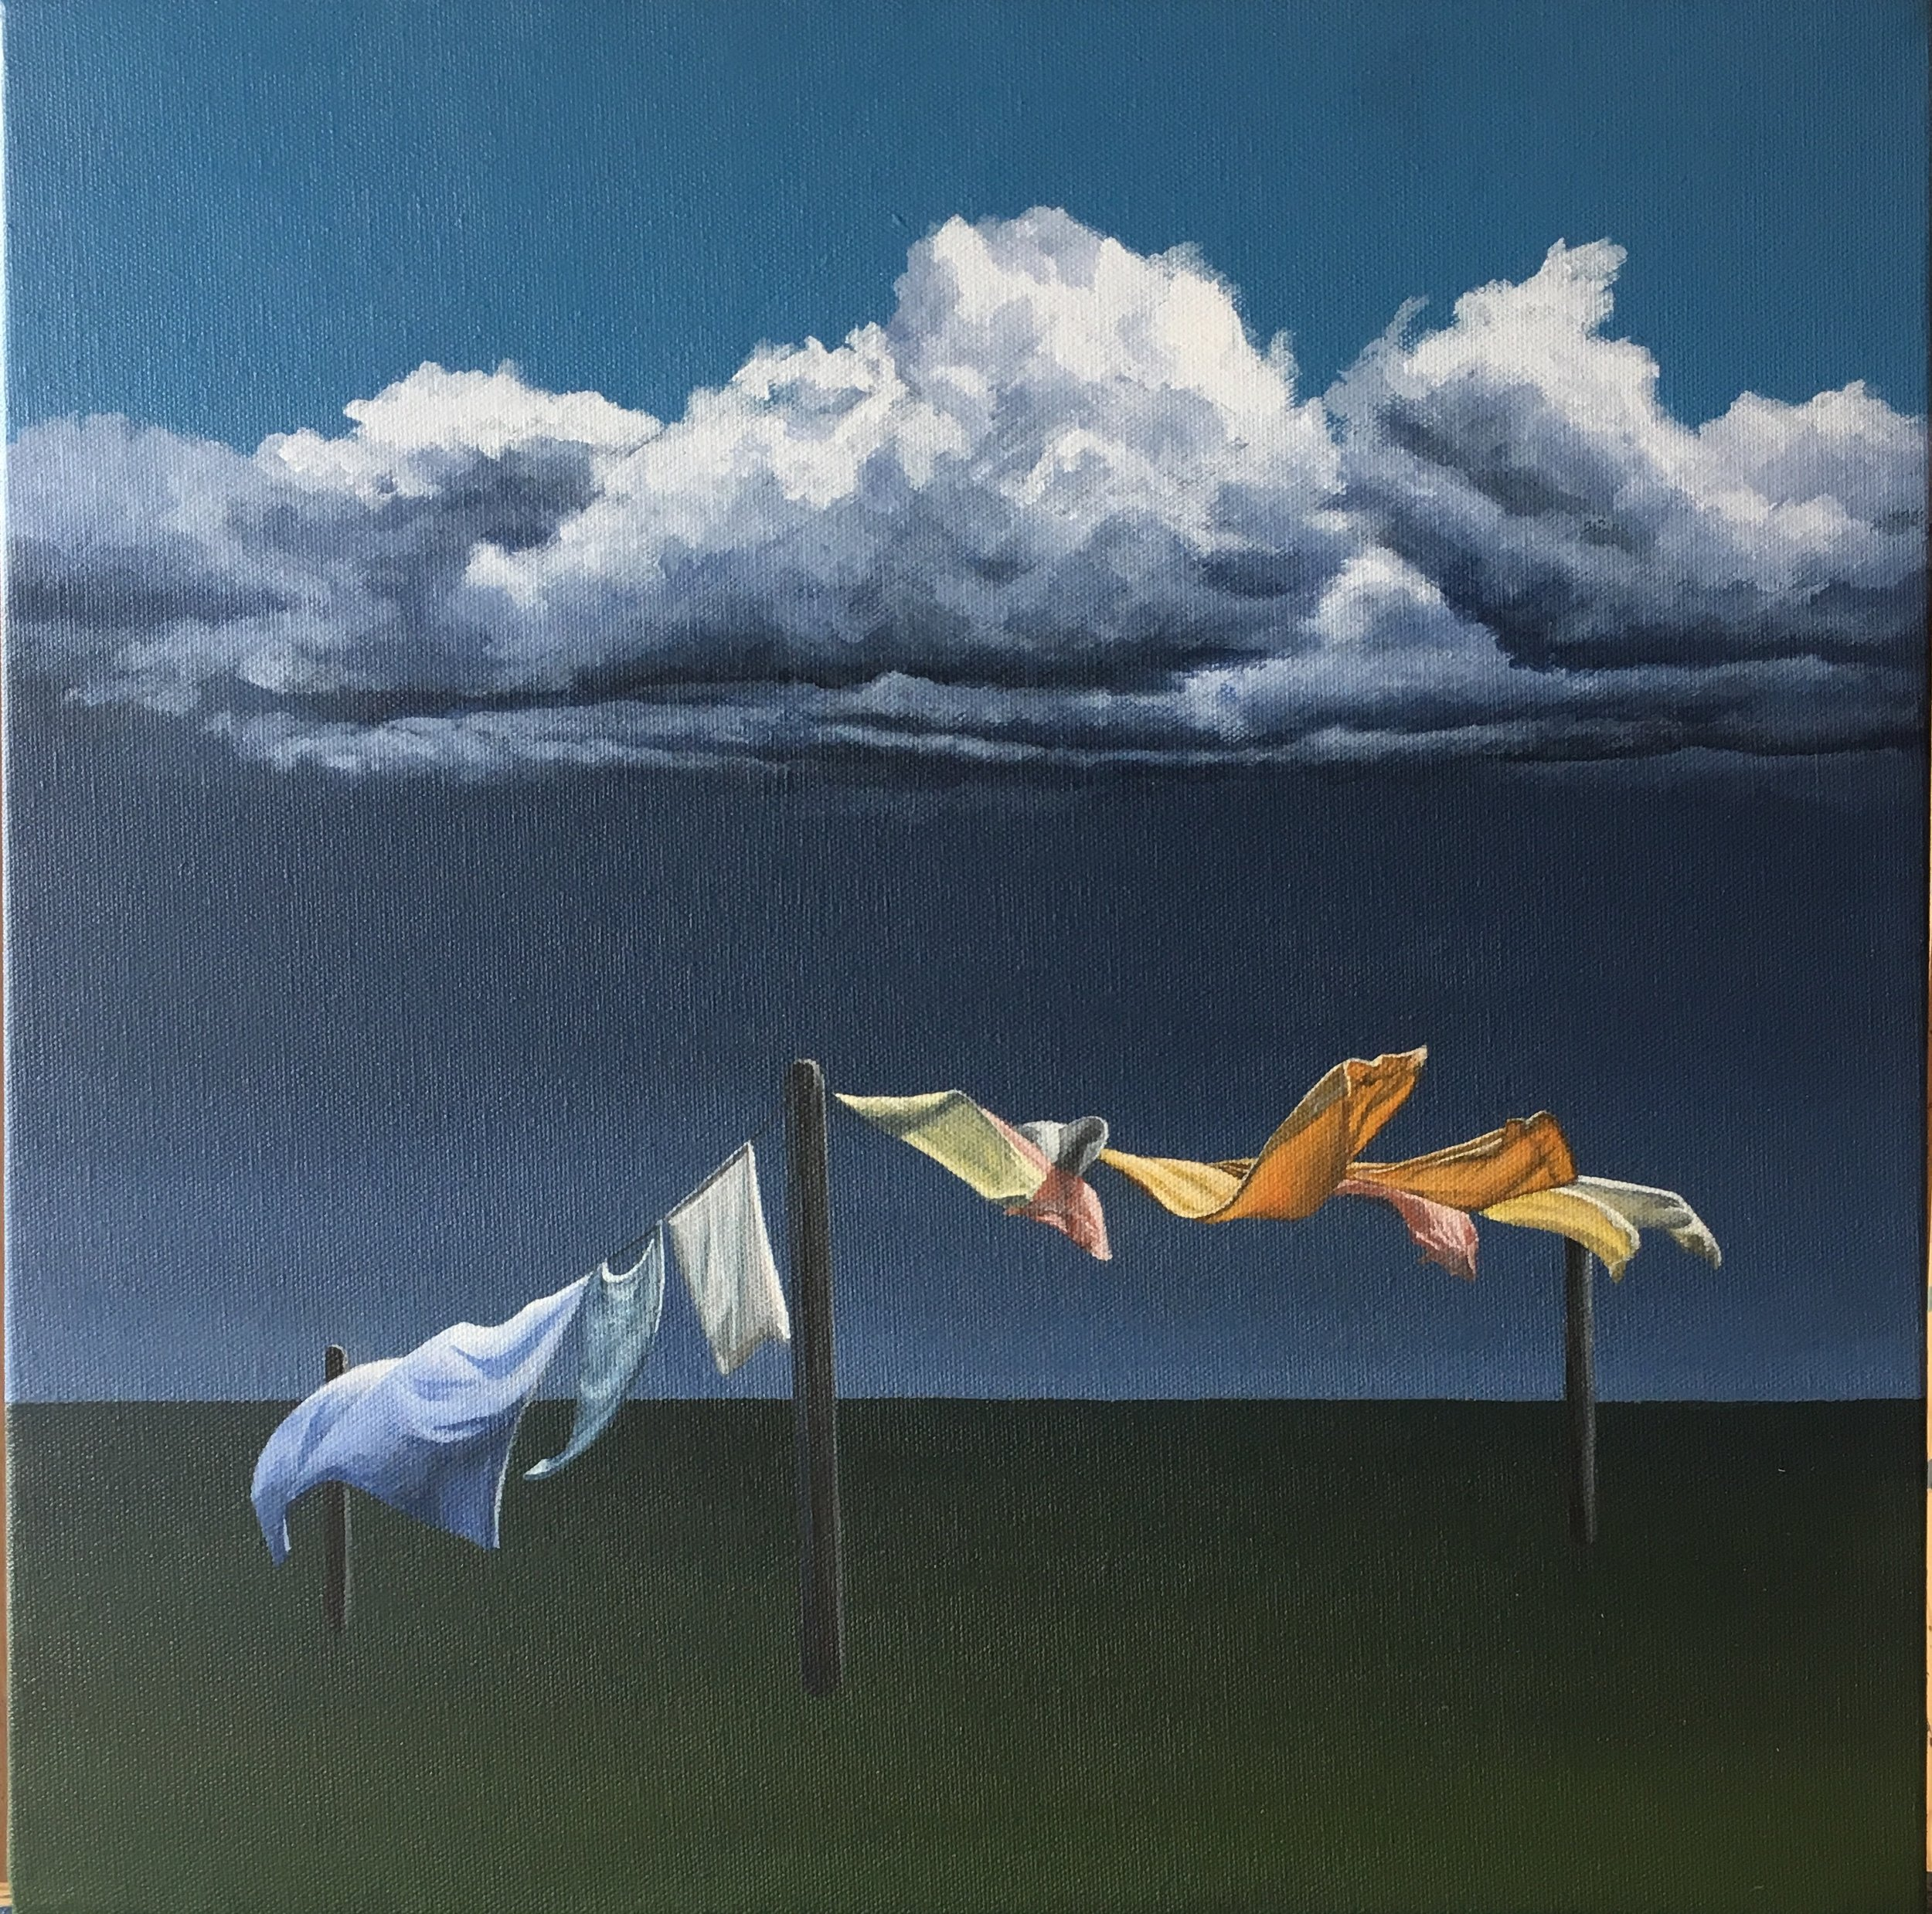 Storm Warning 1  Acrylic on Canvas 16 x 16 inches   SOLD